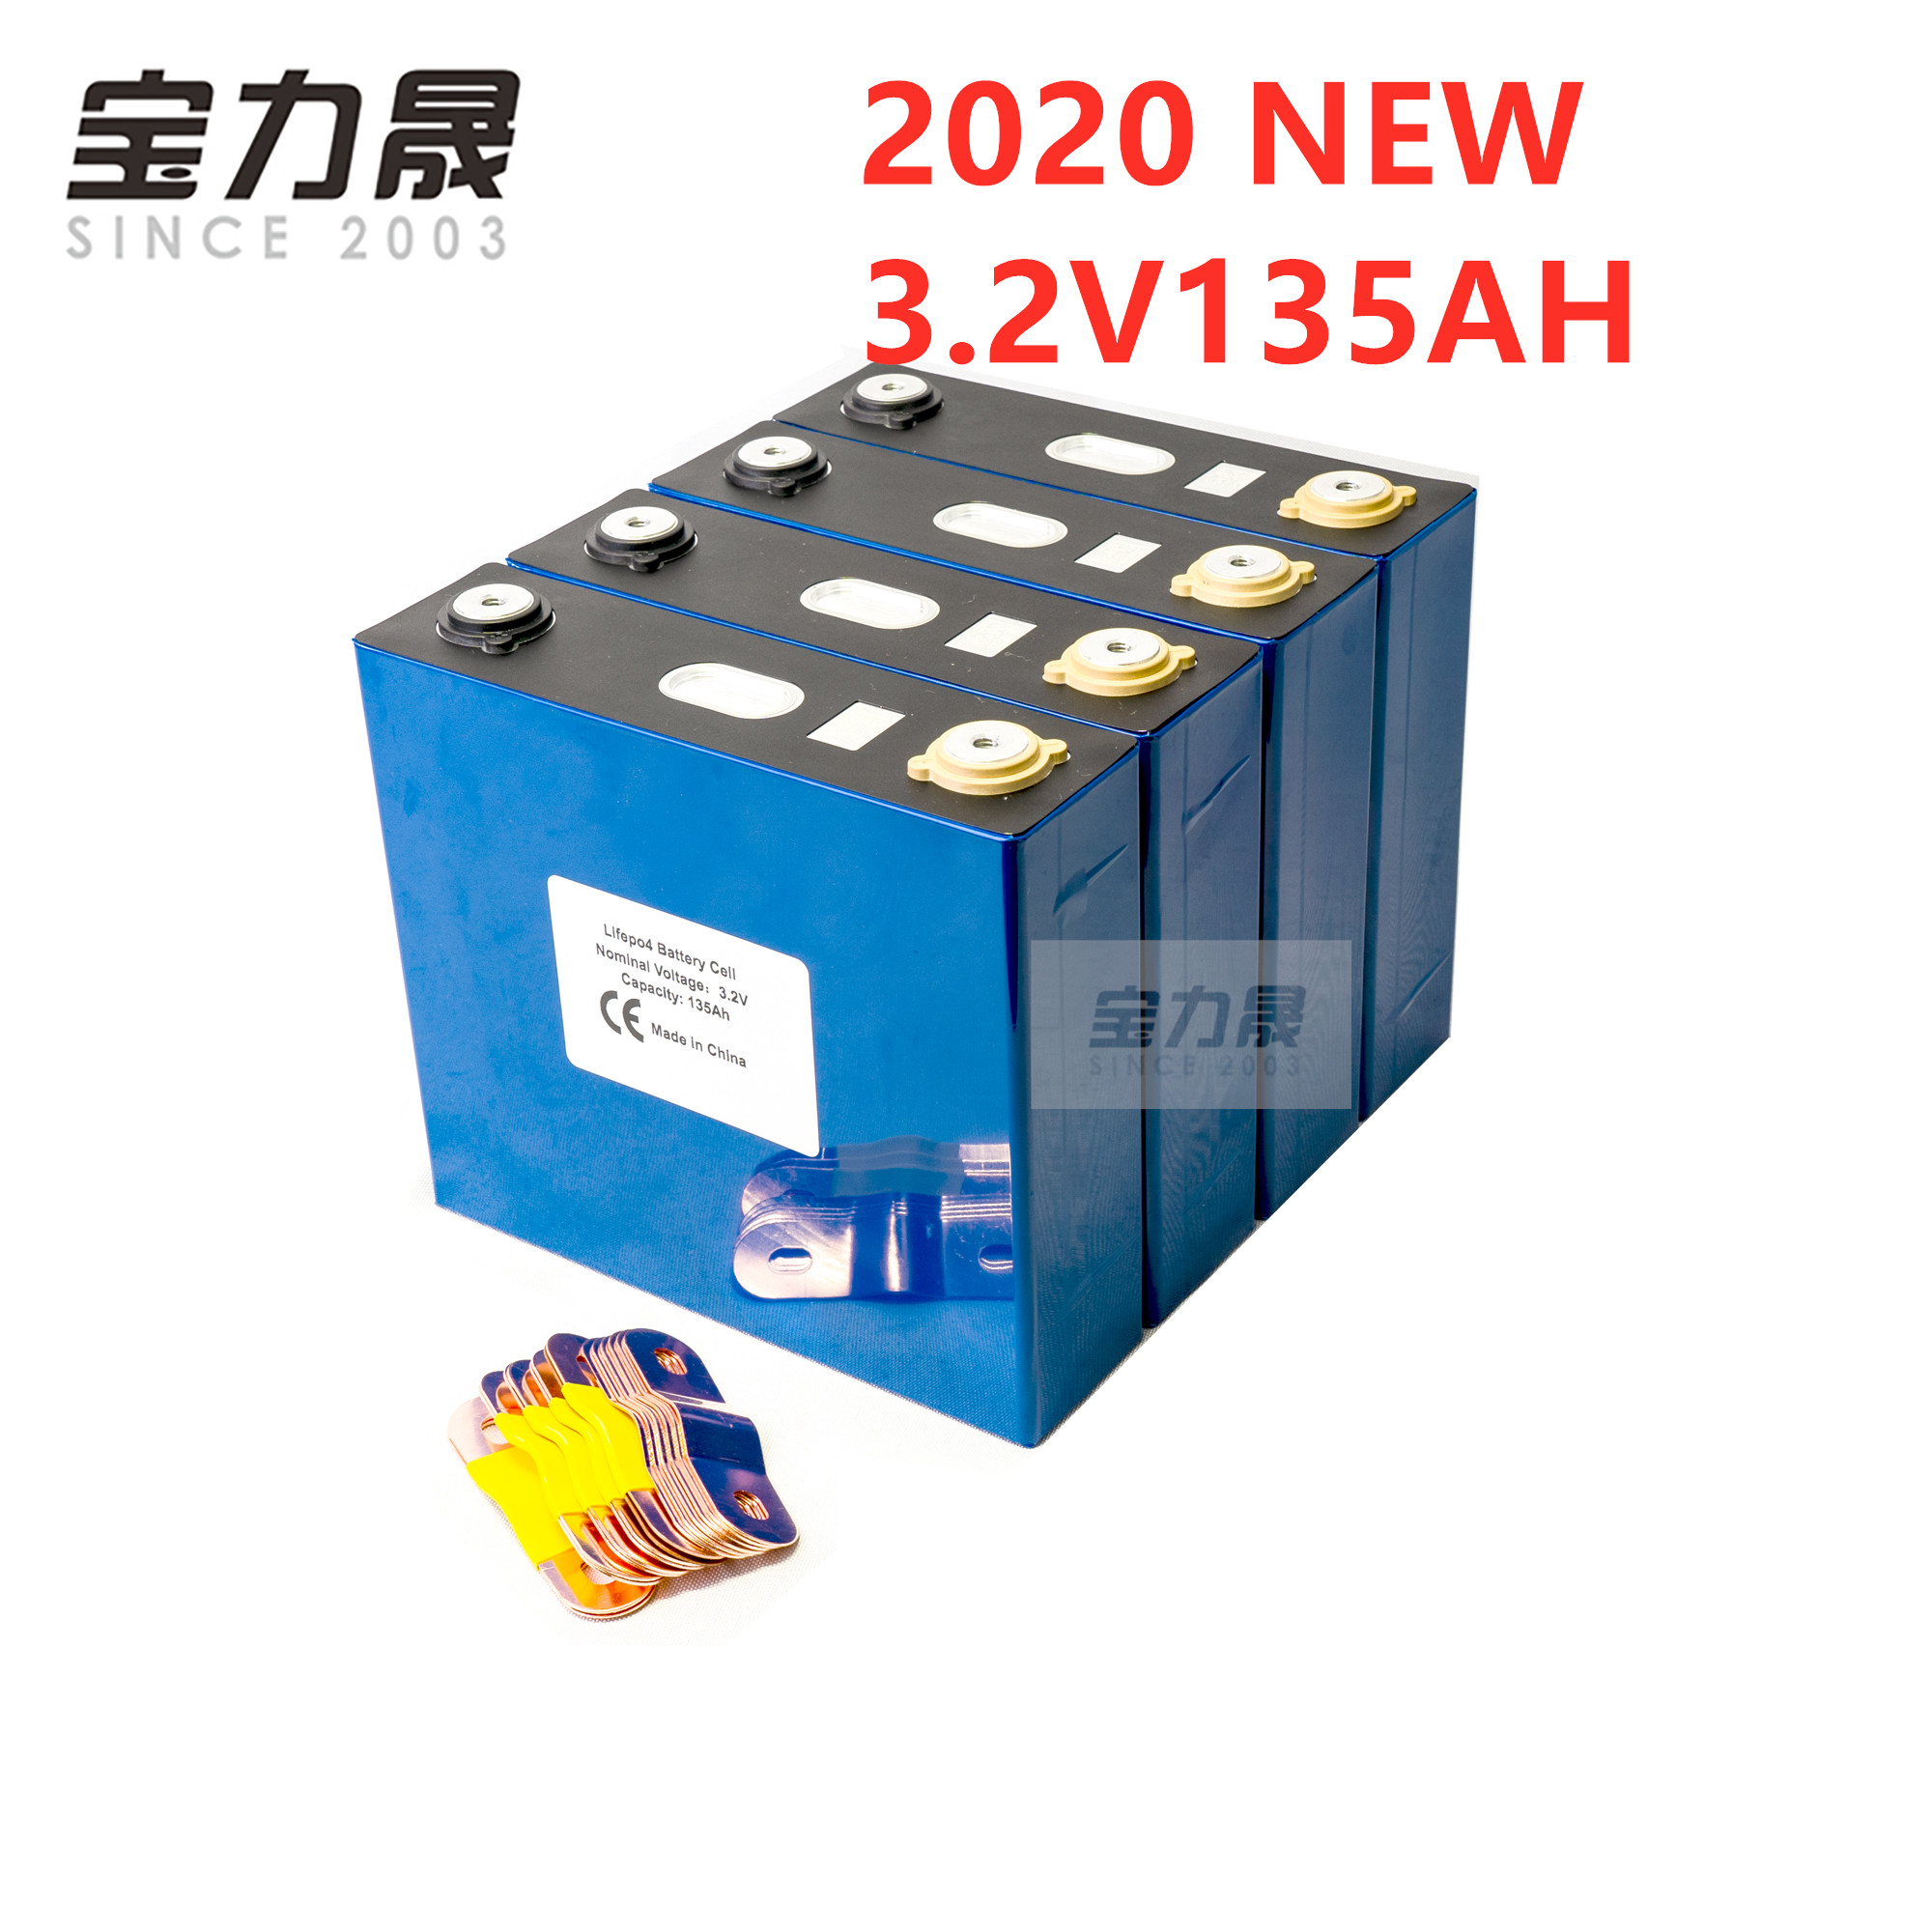 4PCS 3.2V 135AH Lifepo4 Rechargeable Battery Lithium Iron Phosphate Cell Solar 24V 12V  Cells Not 150Ah 150ah EU US TAX FREE